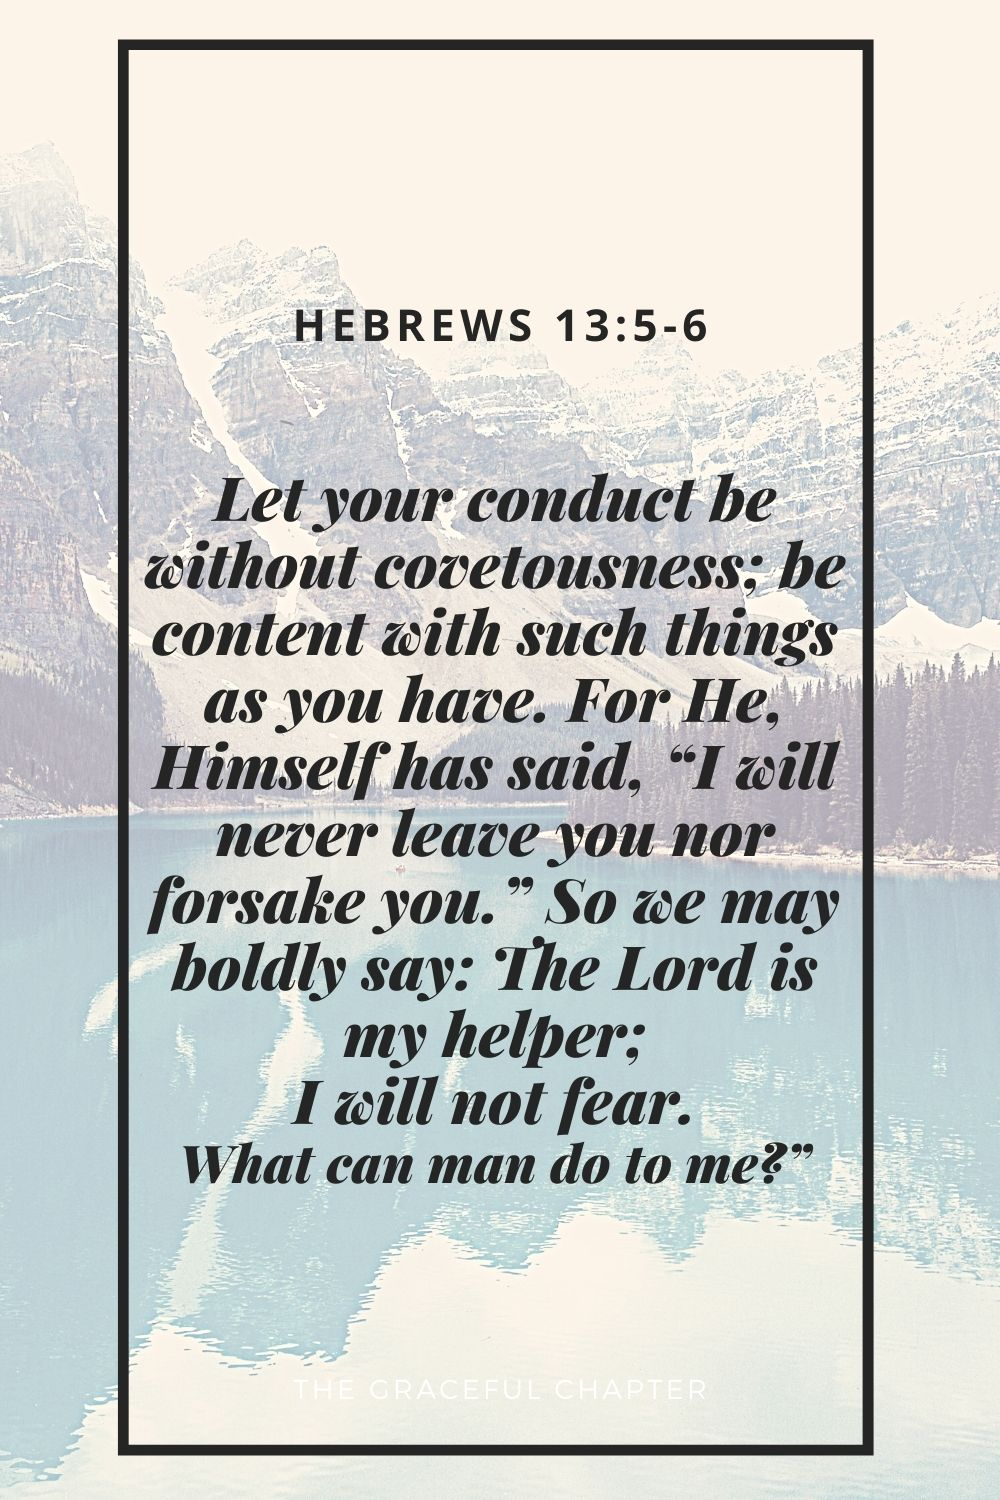 """Let your conduct be without covetousness; be content with such things as you have. For He, Himself has said, """"I will never leave you nor forsake you."""" So we may boldly say: The Lord is my helper; I will not fear. What can man do to me?"""" Hebrews 13:5-6"""